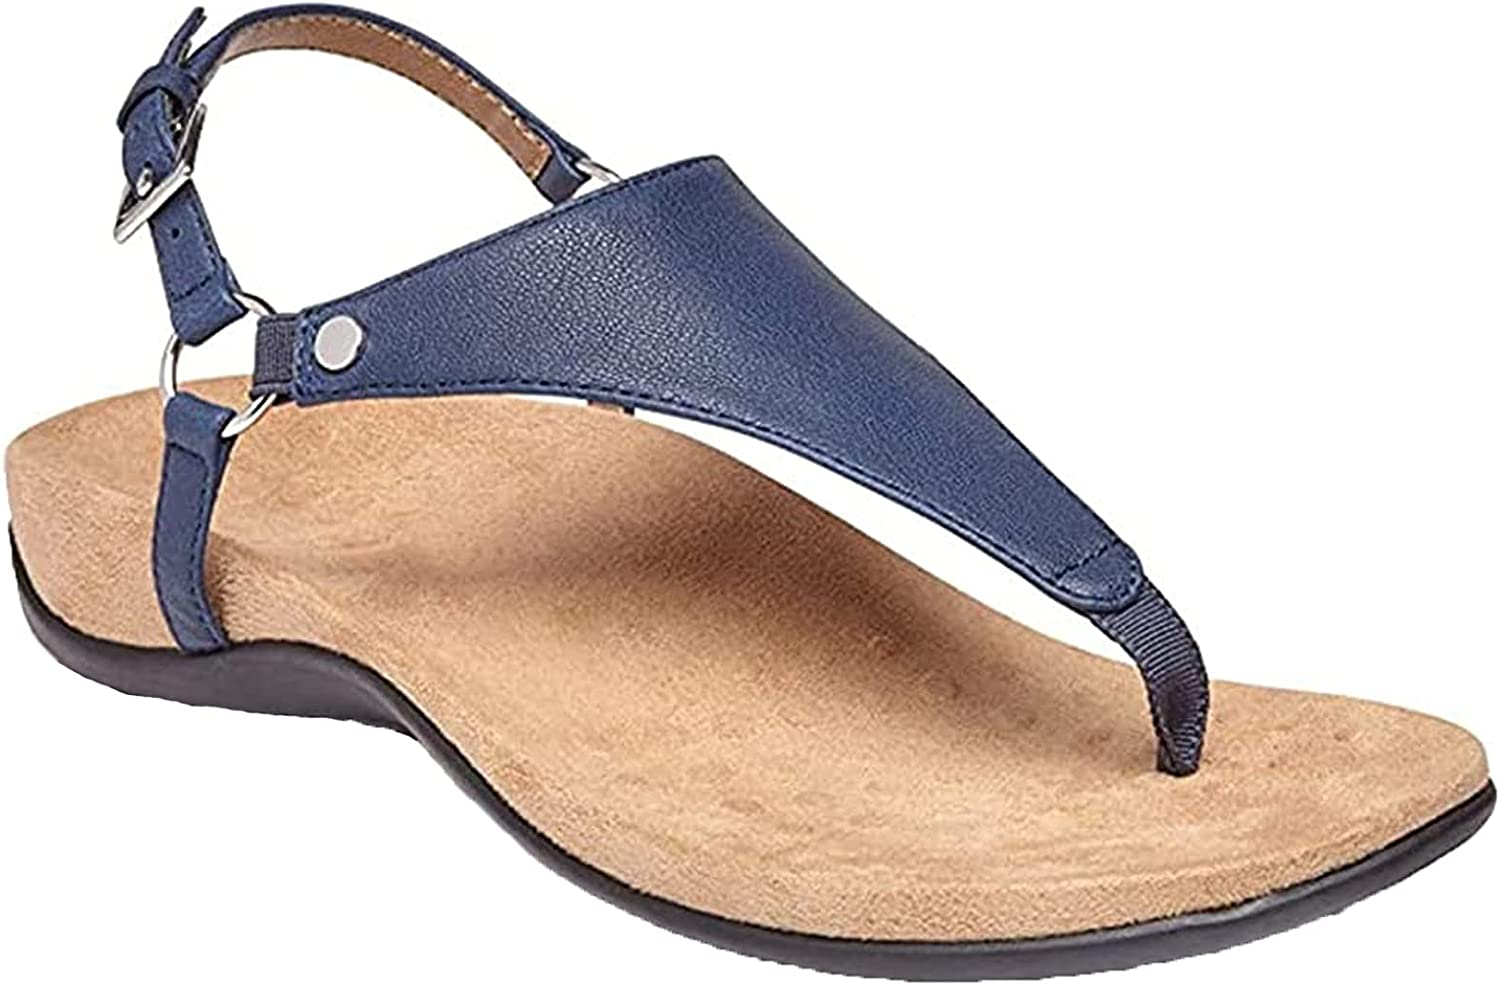 Women's Open Toe Thongs Sandals Clip Toe Sandals, Concealed Orthotic Arch Support Flip Flop